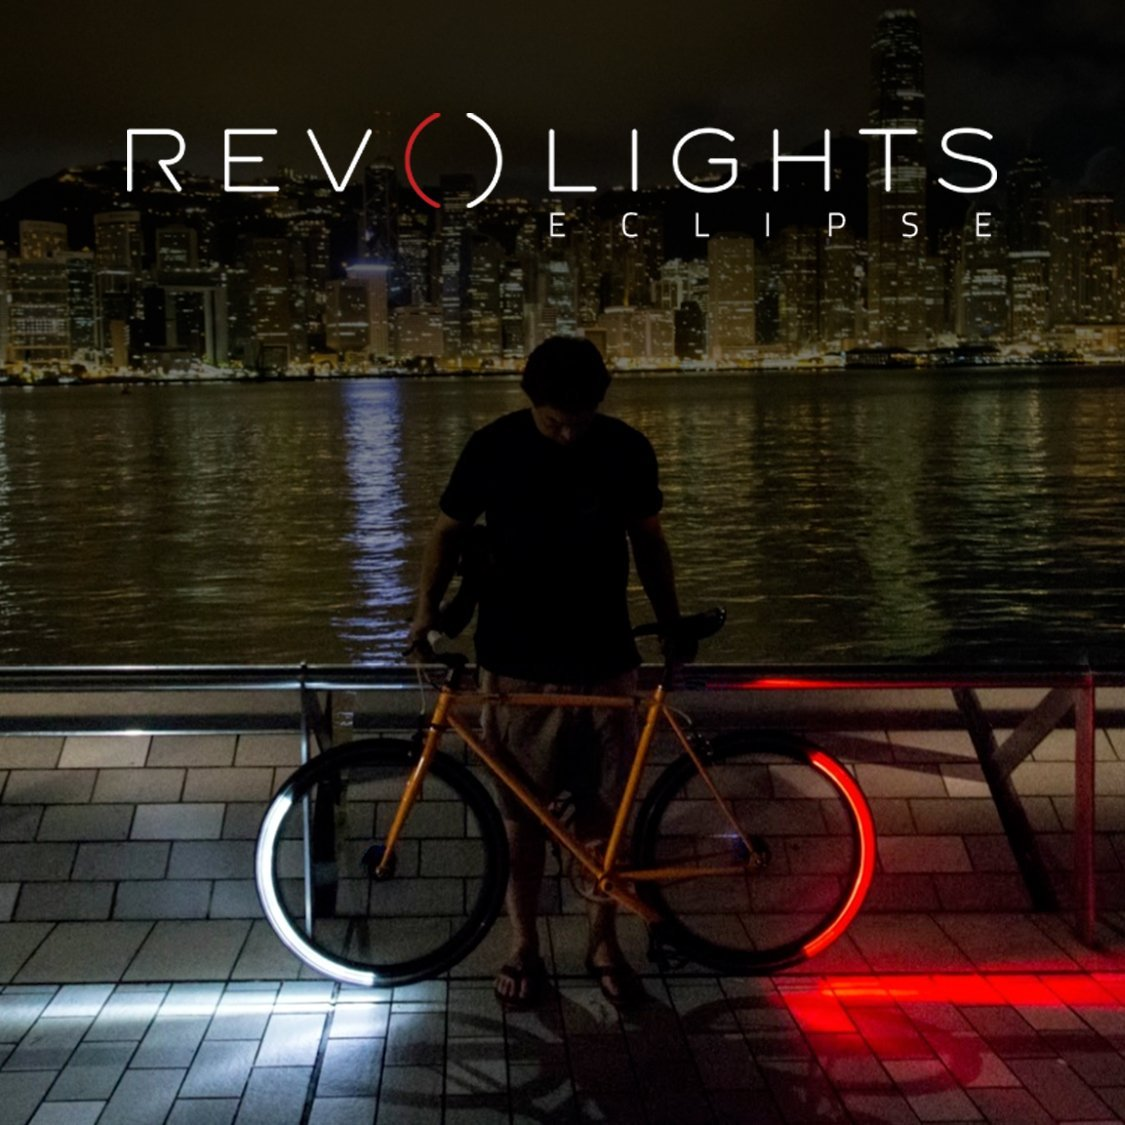 Revolights Eclipse Bicycle Lighting System, 700c/27-Inch by Revolights (Image #1)